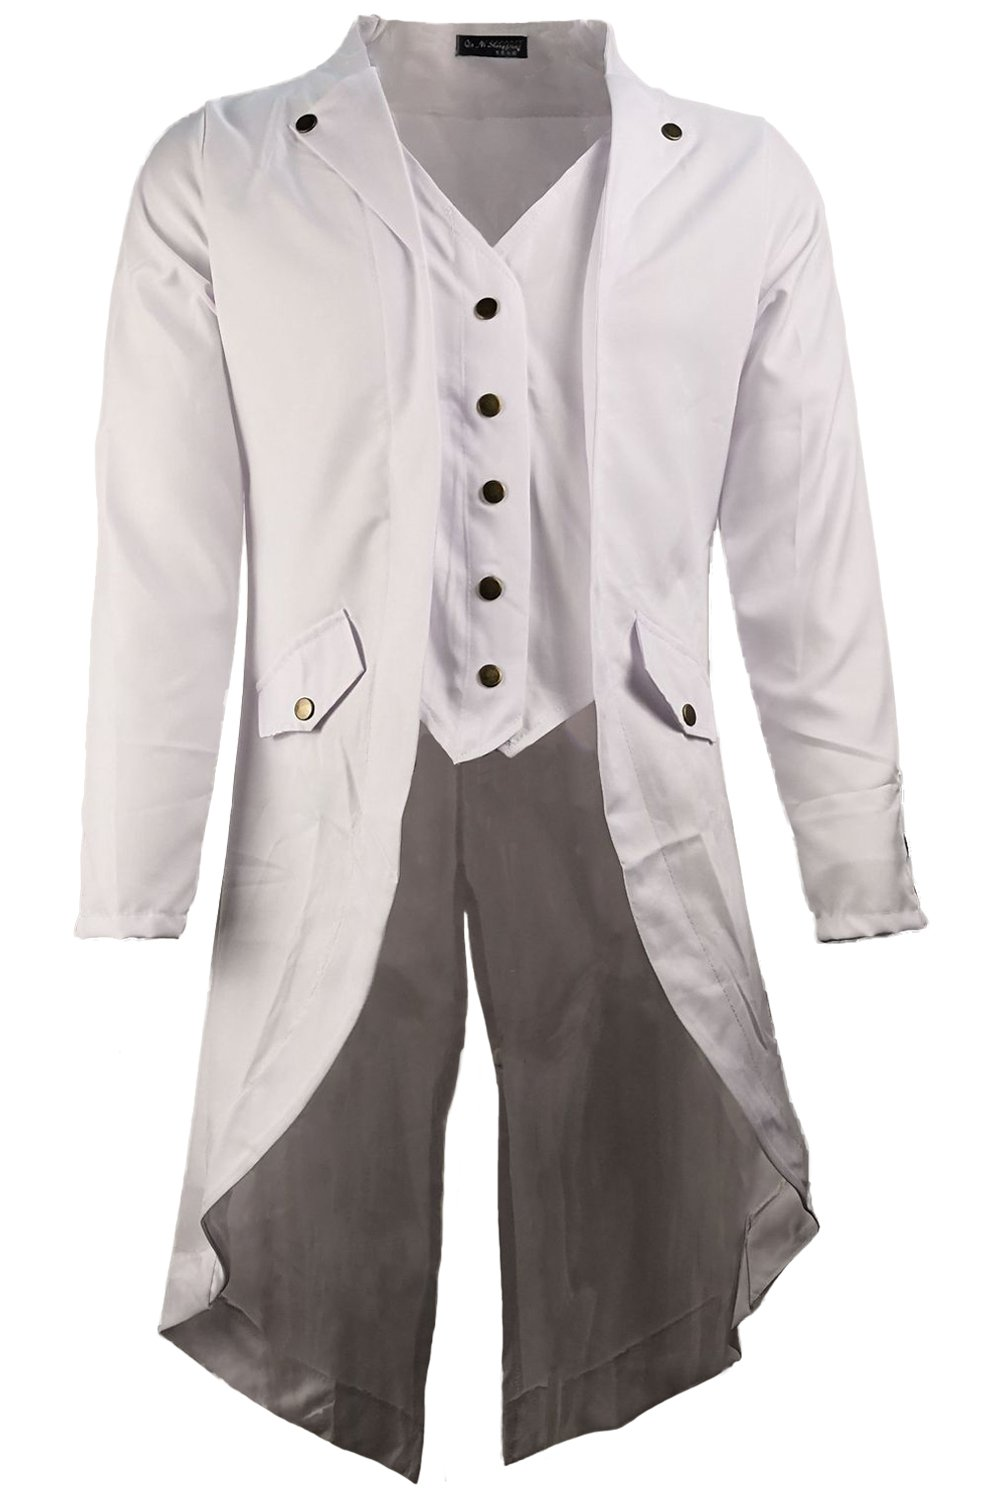 Mutrade Men Retro Solid Color Long Sleeve Steampunk Uniforms Gothic Tailcoat Jacket,XXX-Large